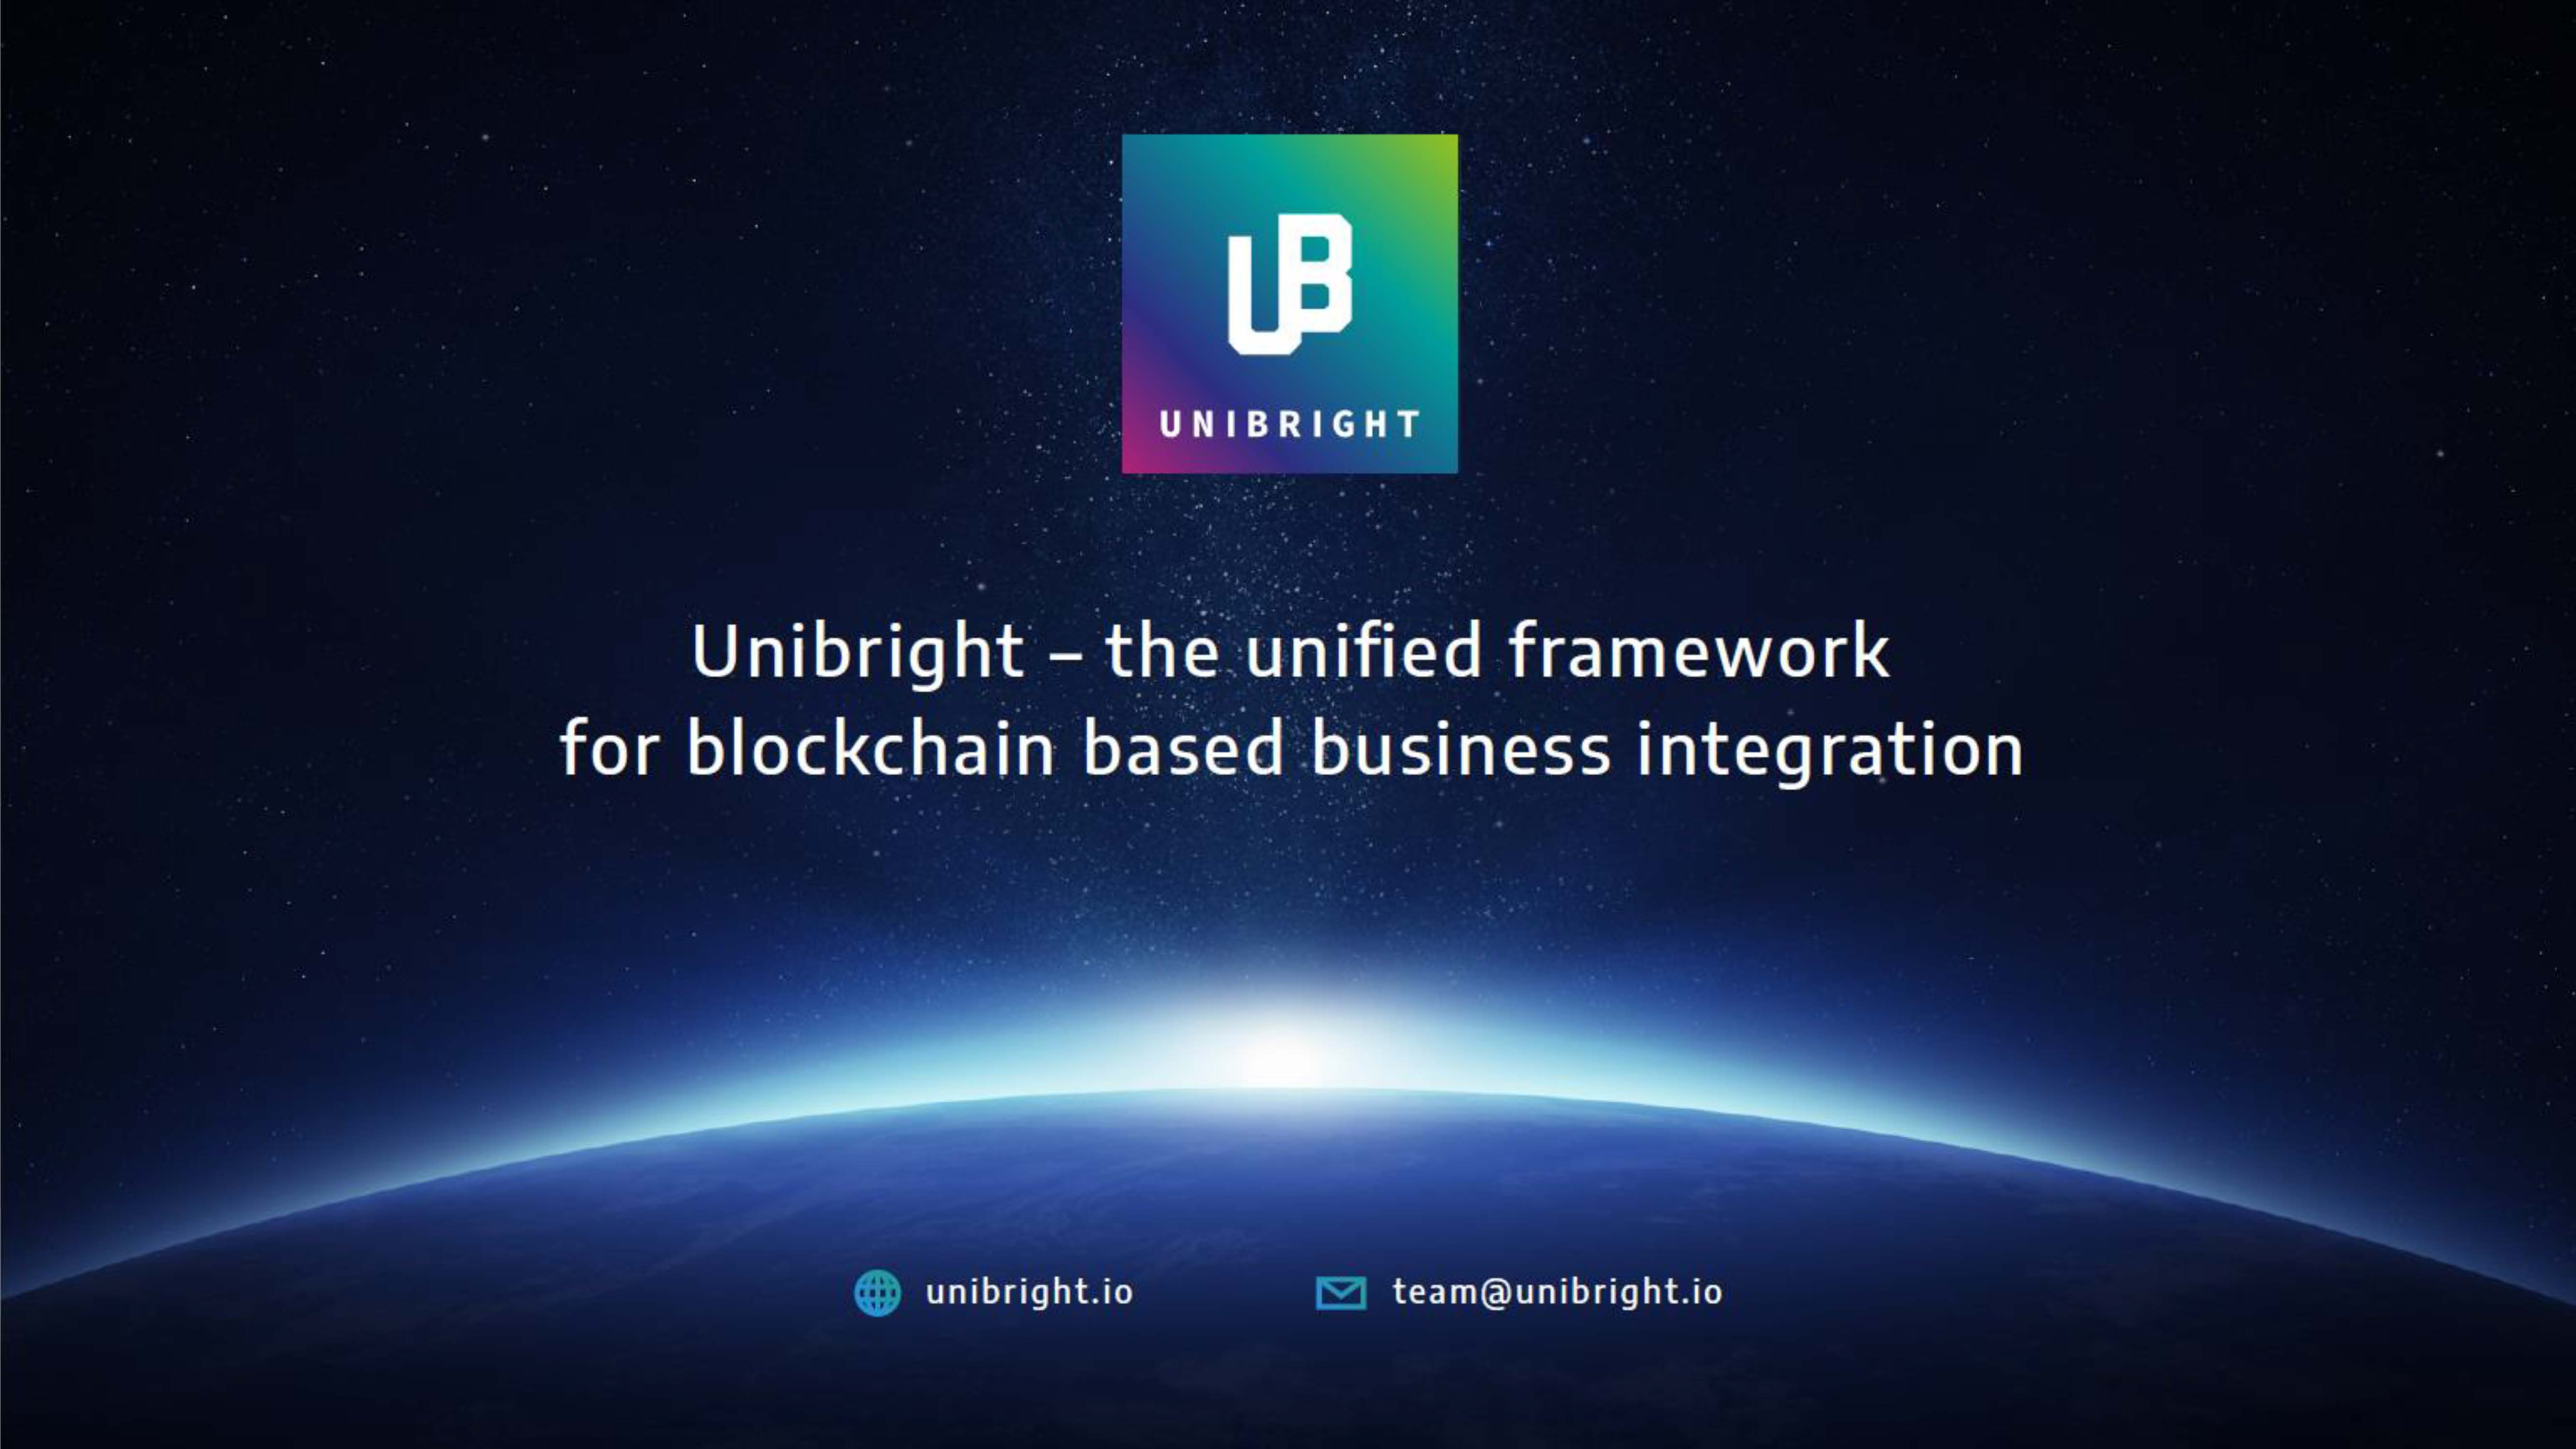 Unibright Framework for blockchain Integration